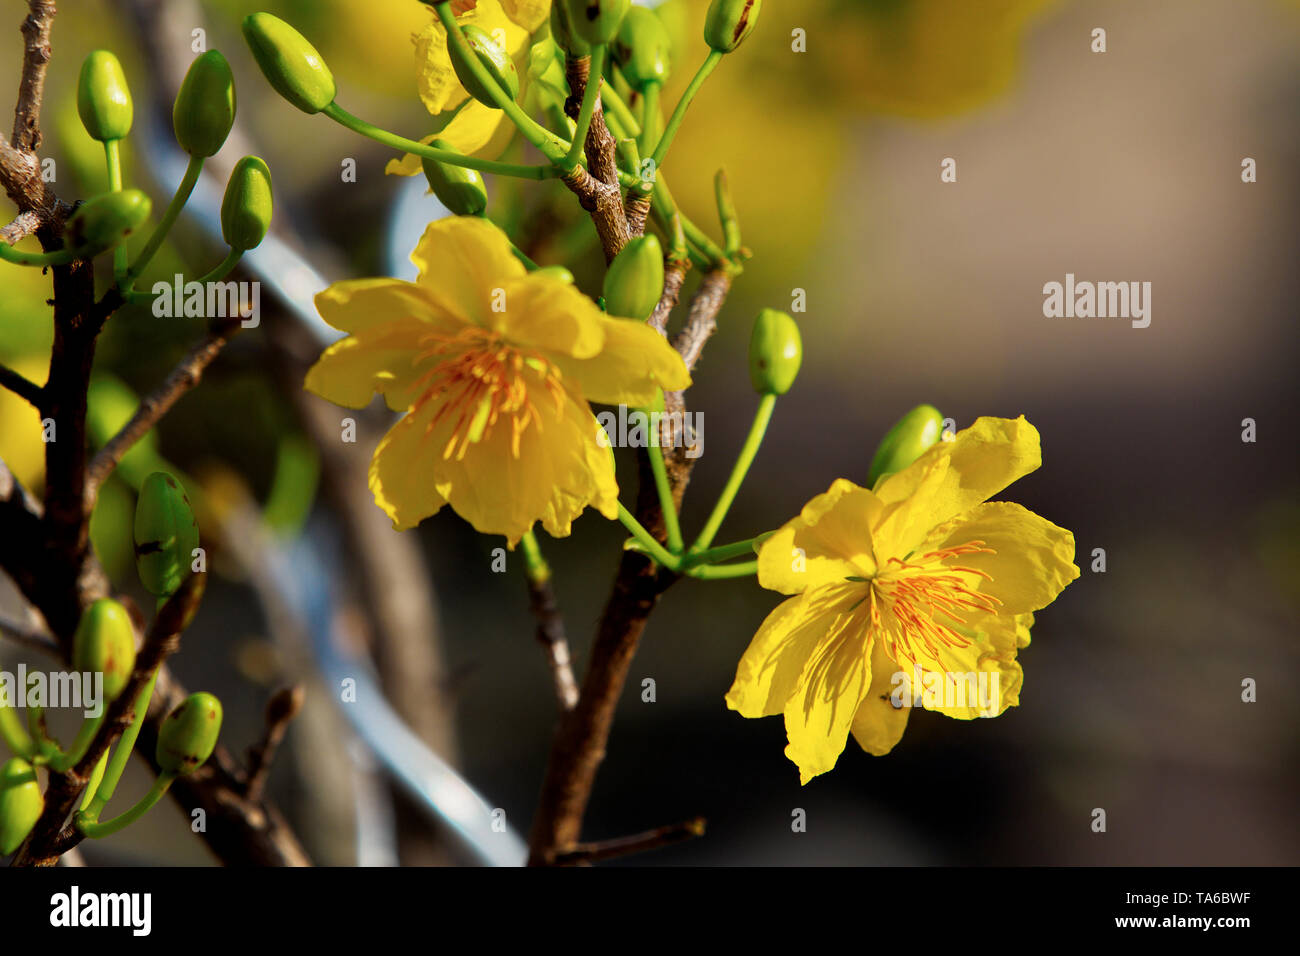 Nice apricot blossoms in focus - Stock Image